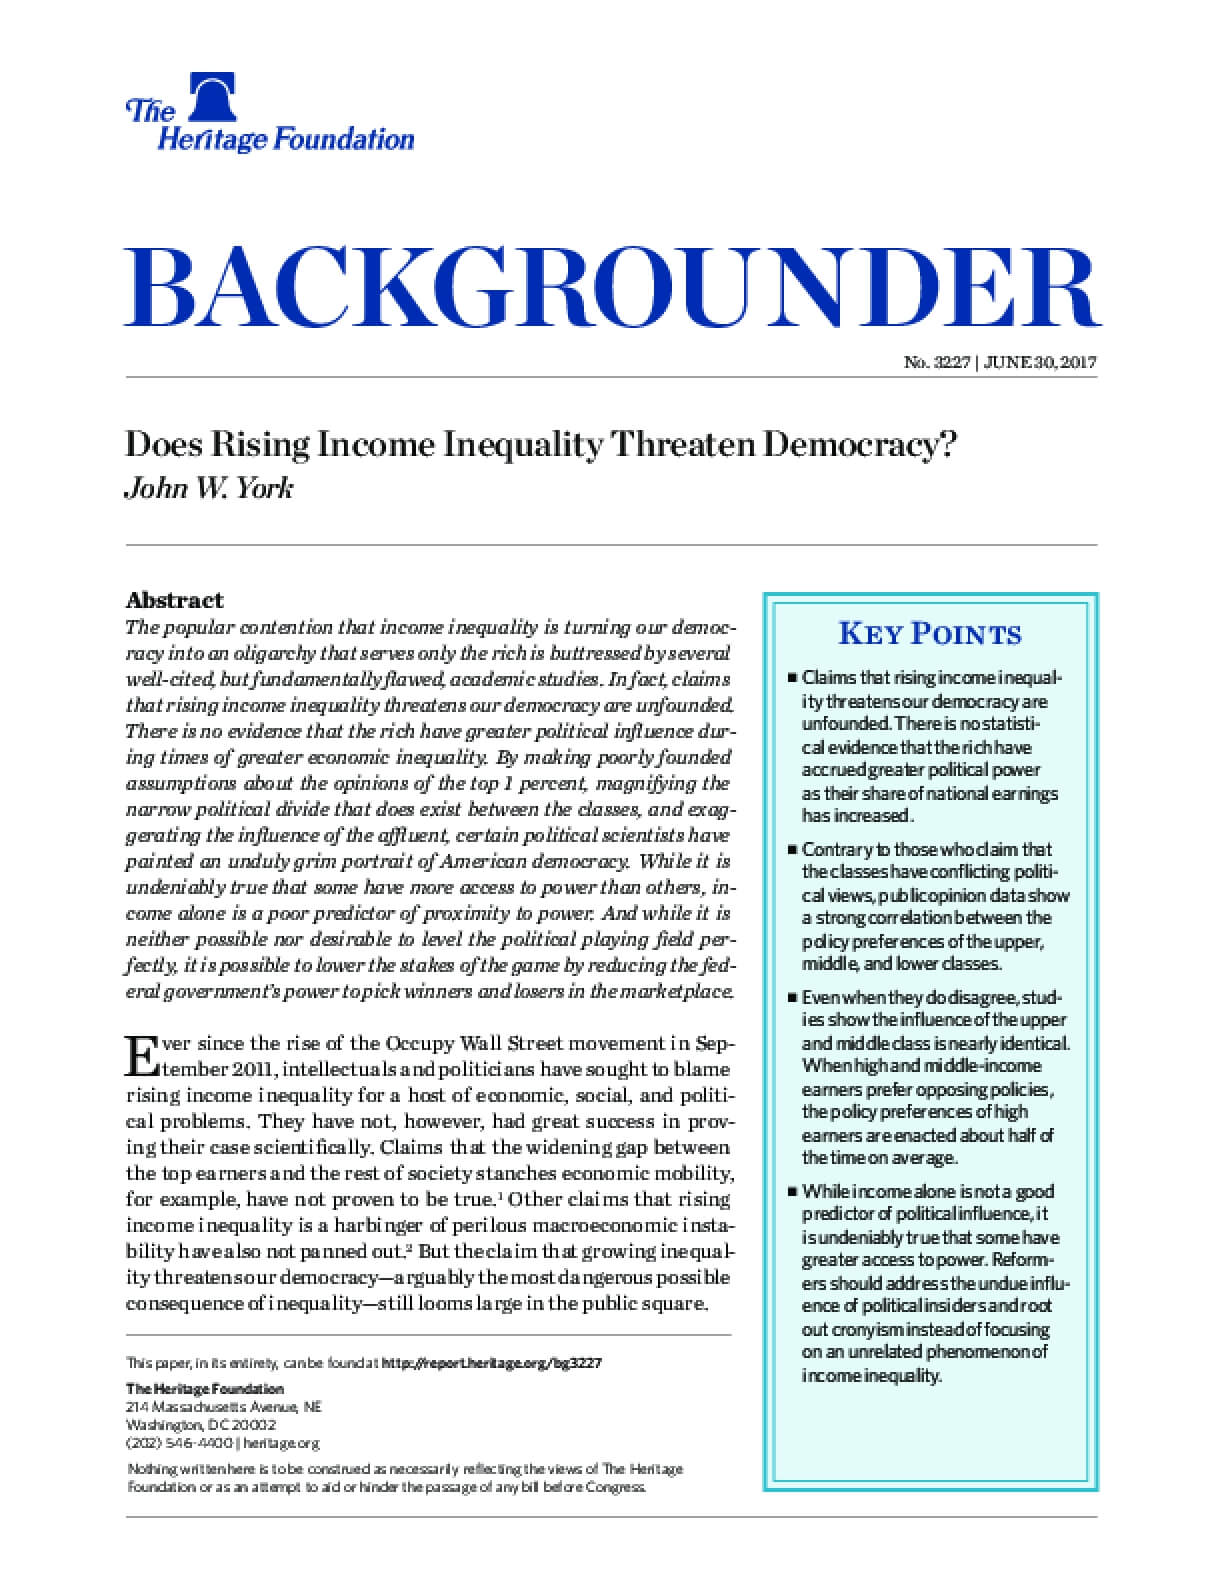 Does Rising Income Inequality Threaten Democracy?